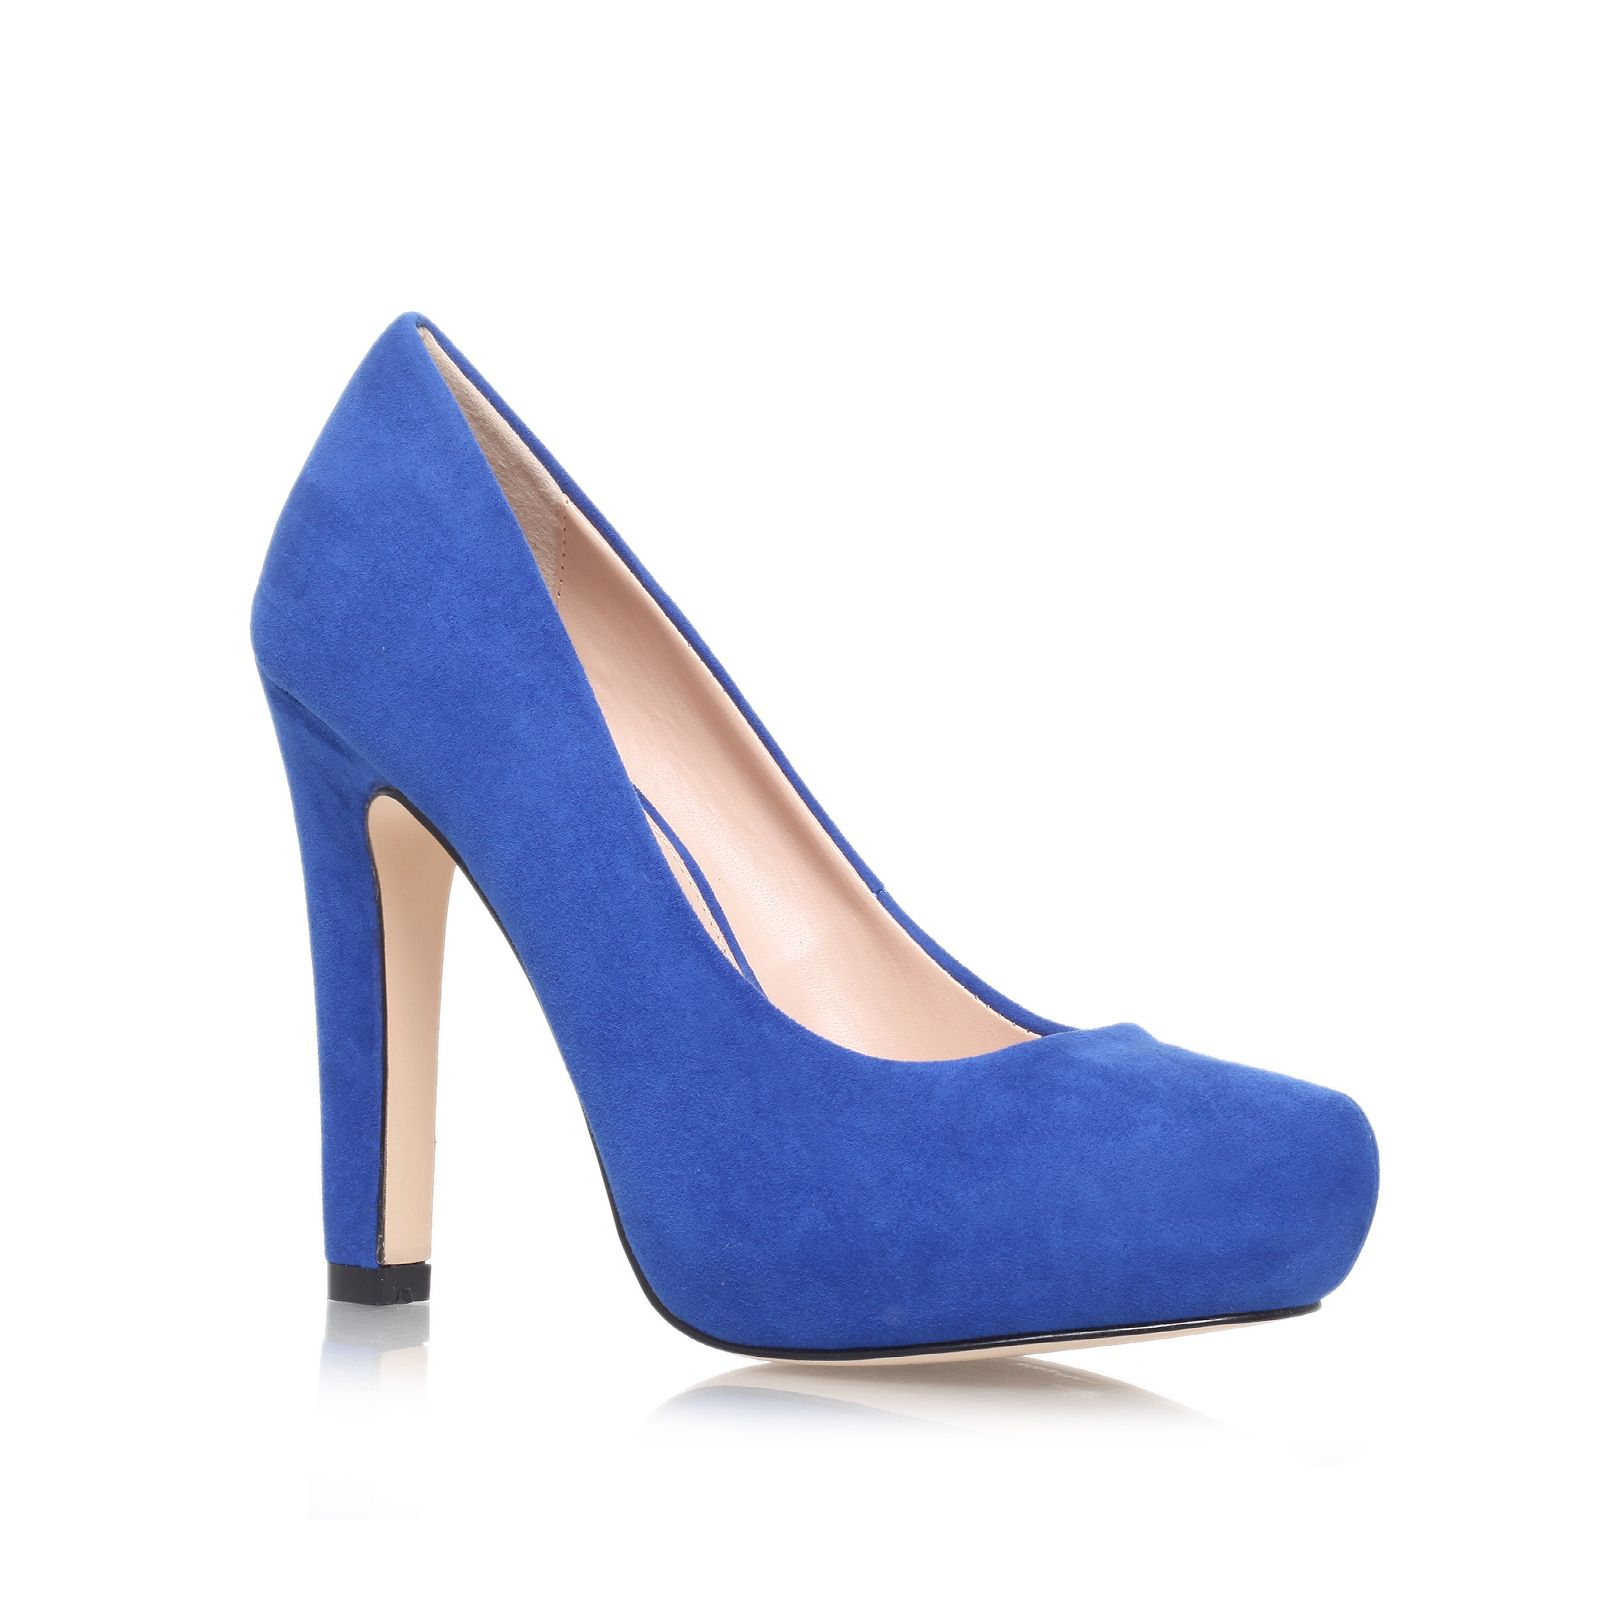 miss kg annie high heel court shoes in blue lyst. Black Bedroom Furniture Sets. Home Design Ideas